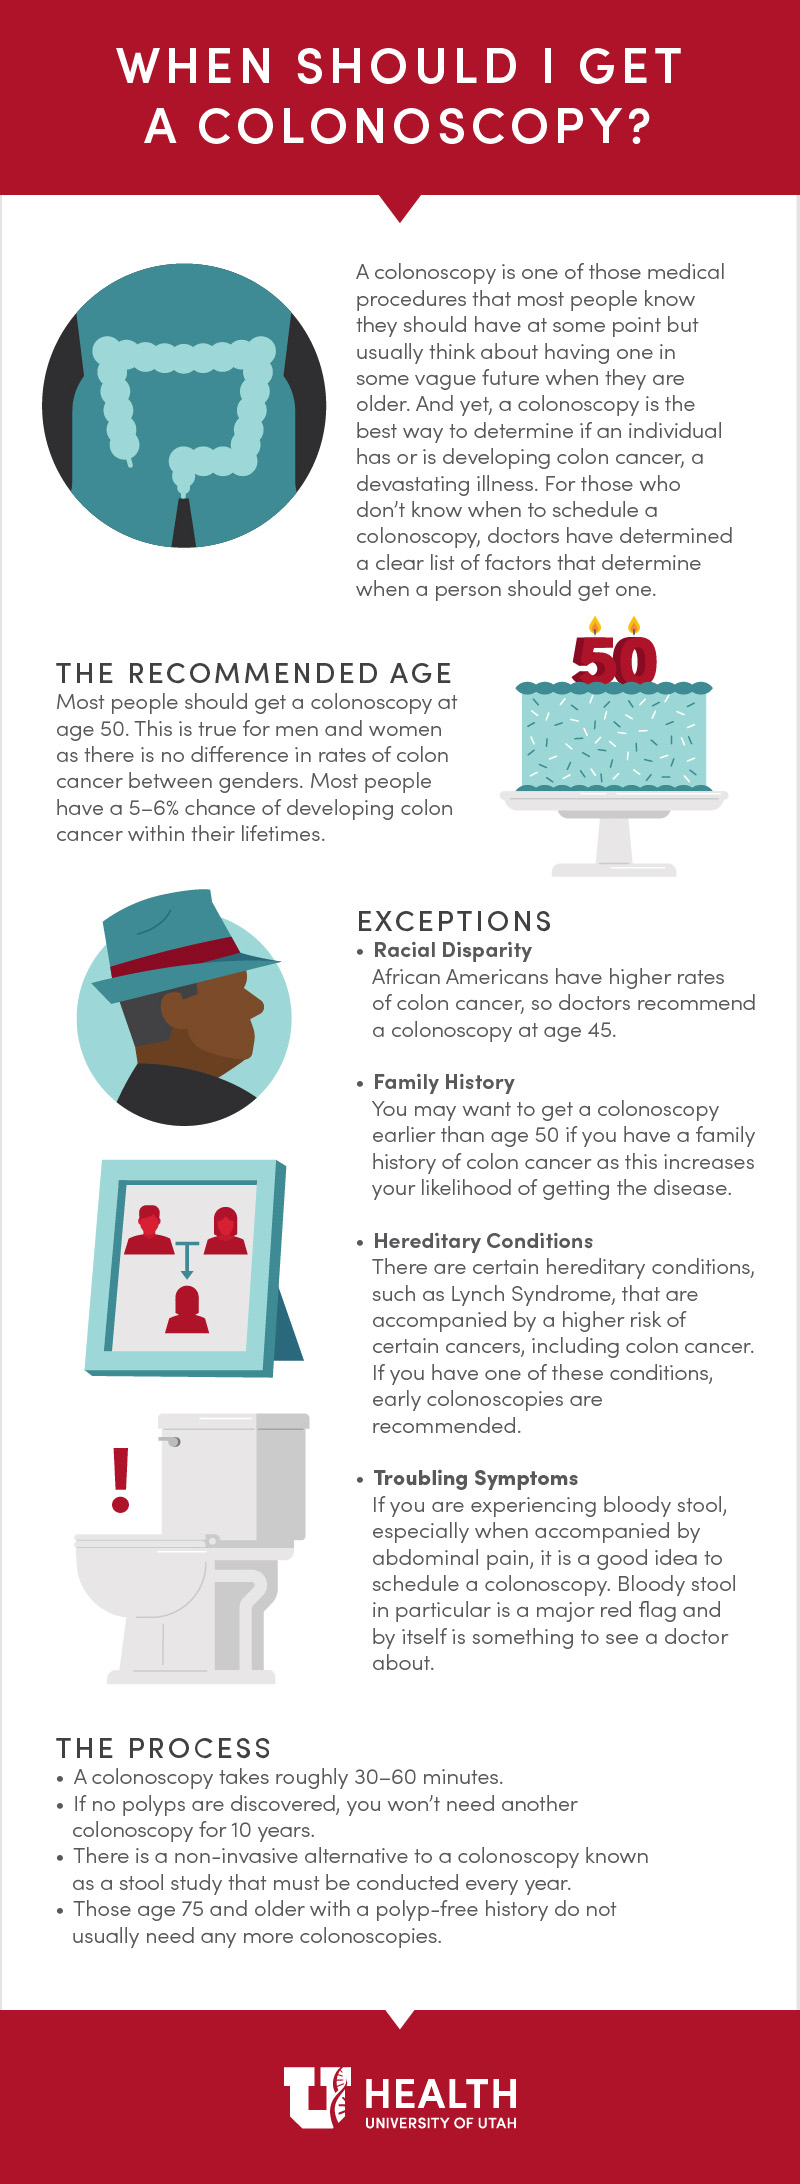 When Should You Get a Colonscopy? Infographic